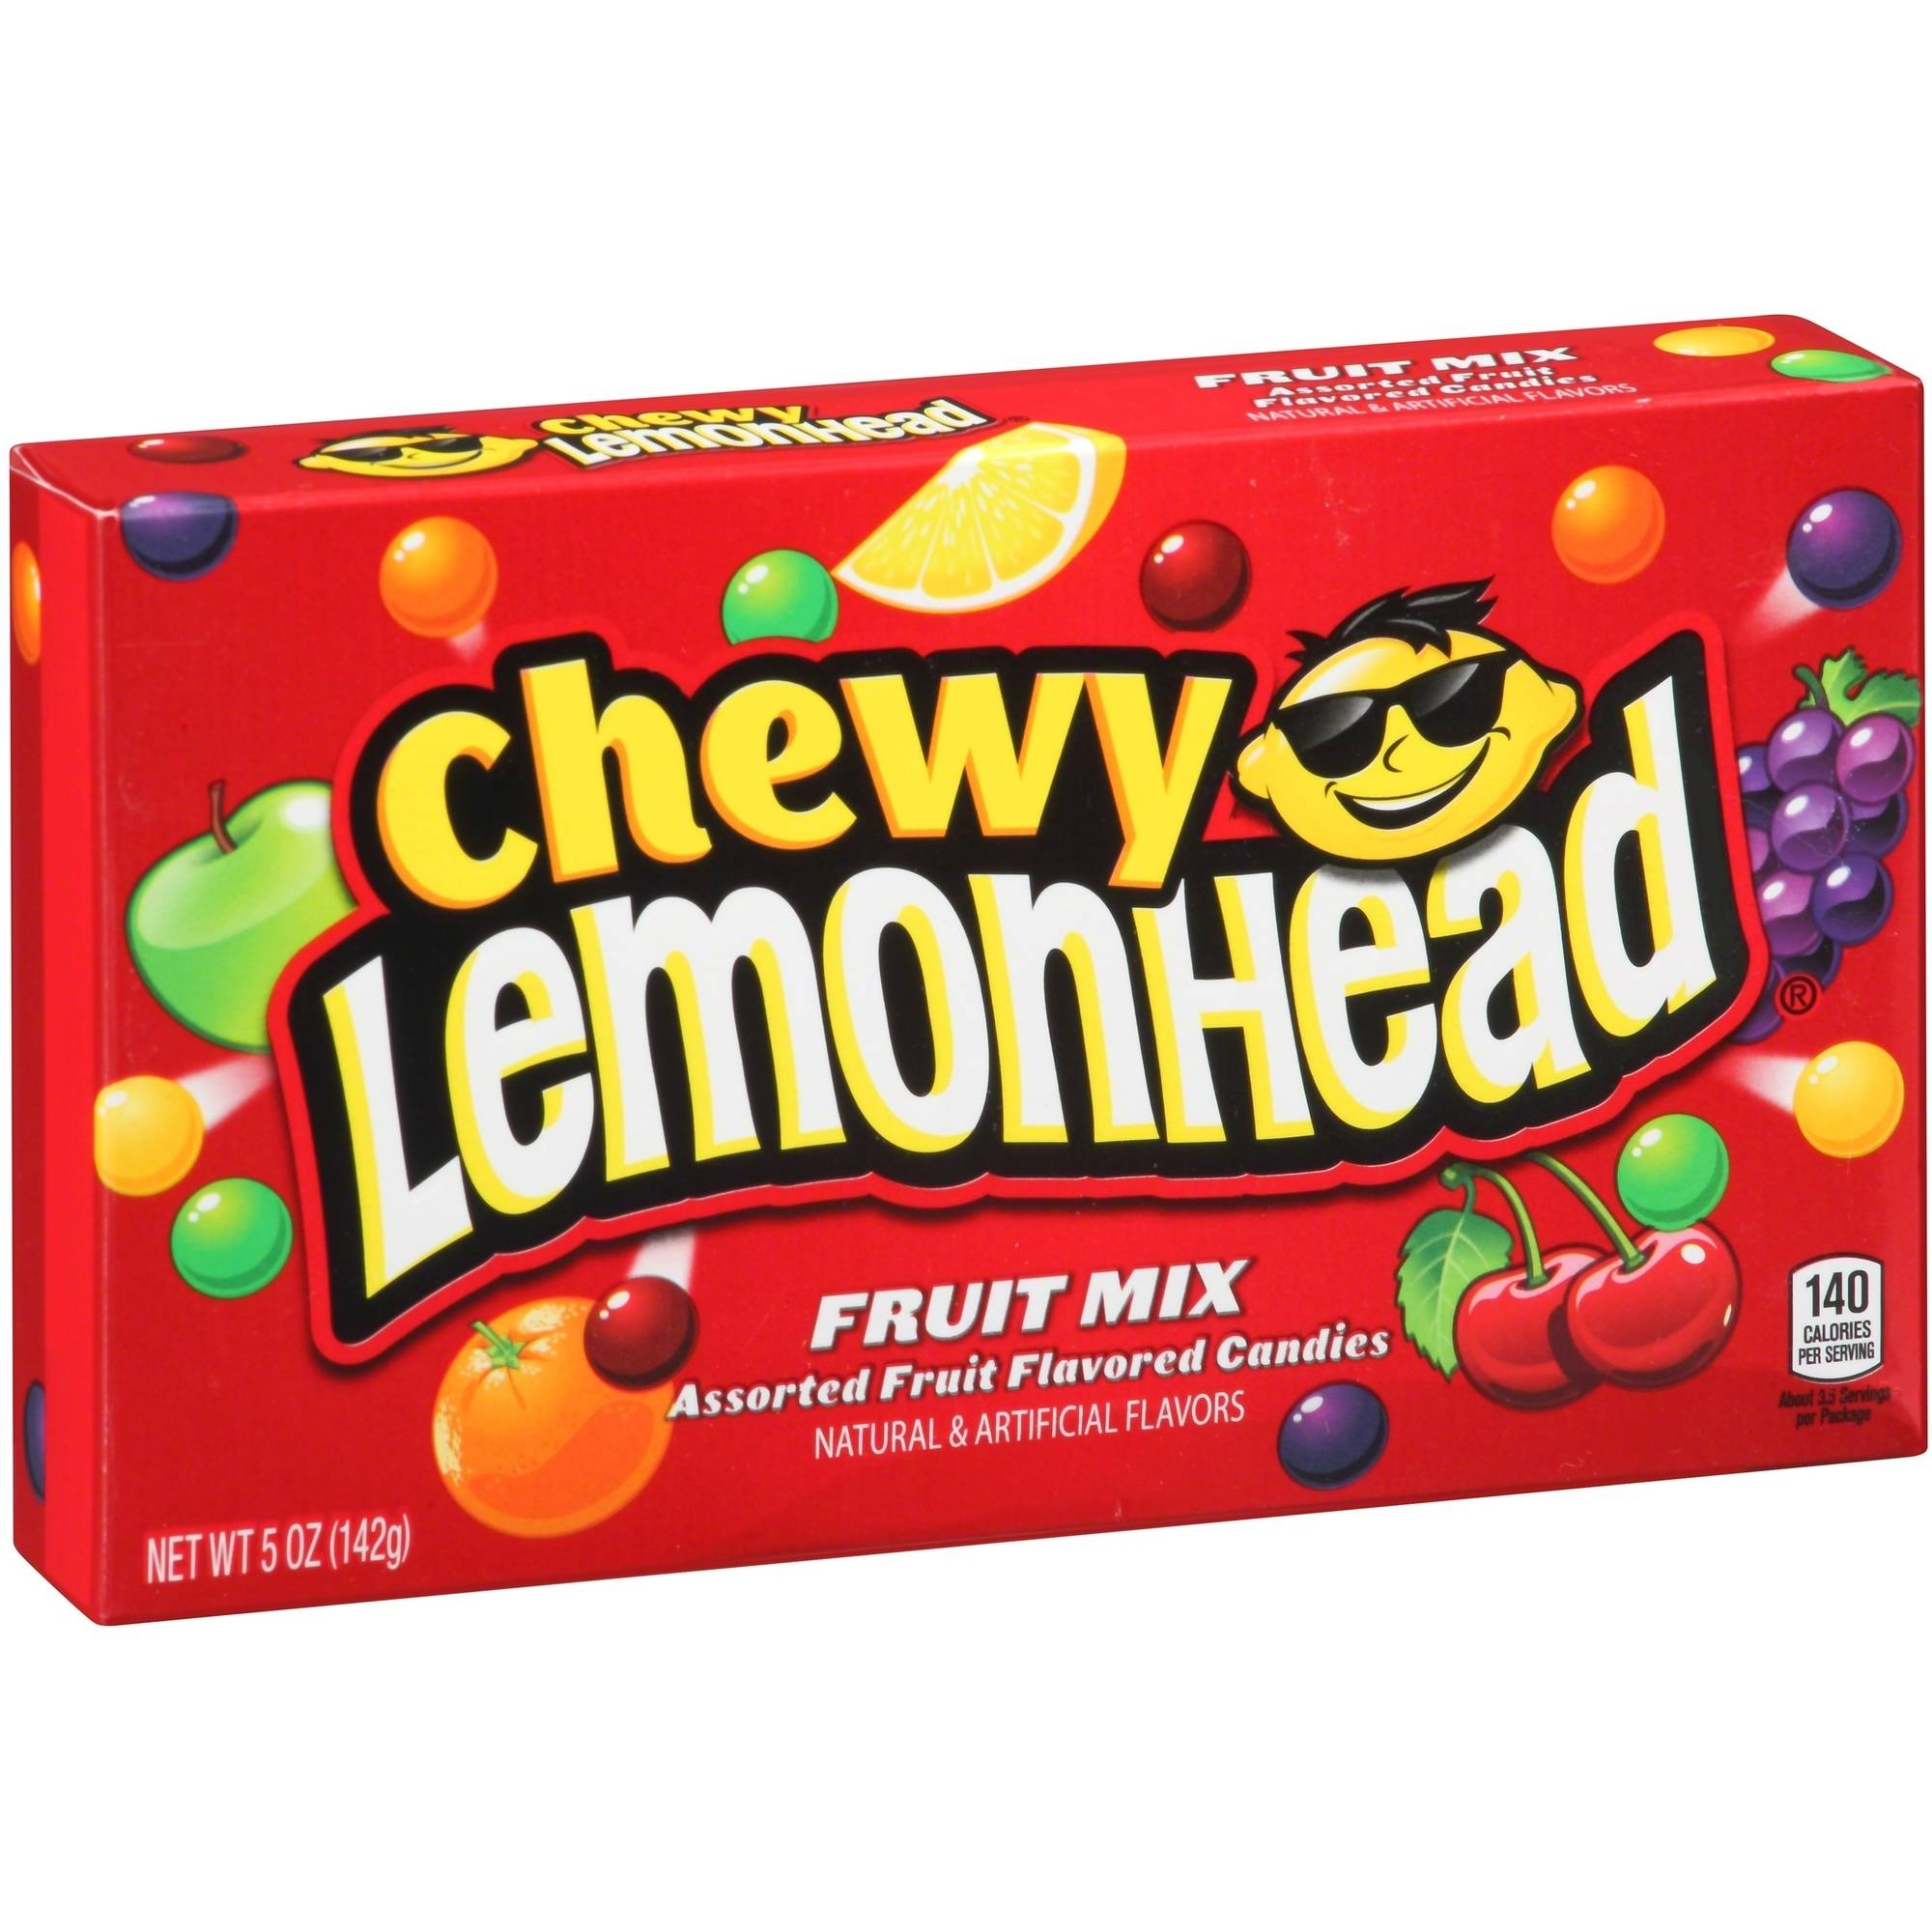 FRUIT MIX CHEWY LEMONHEAD BOX